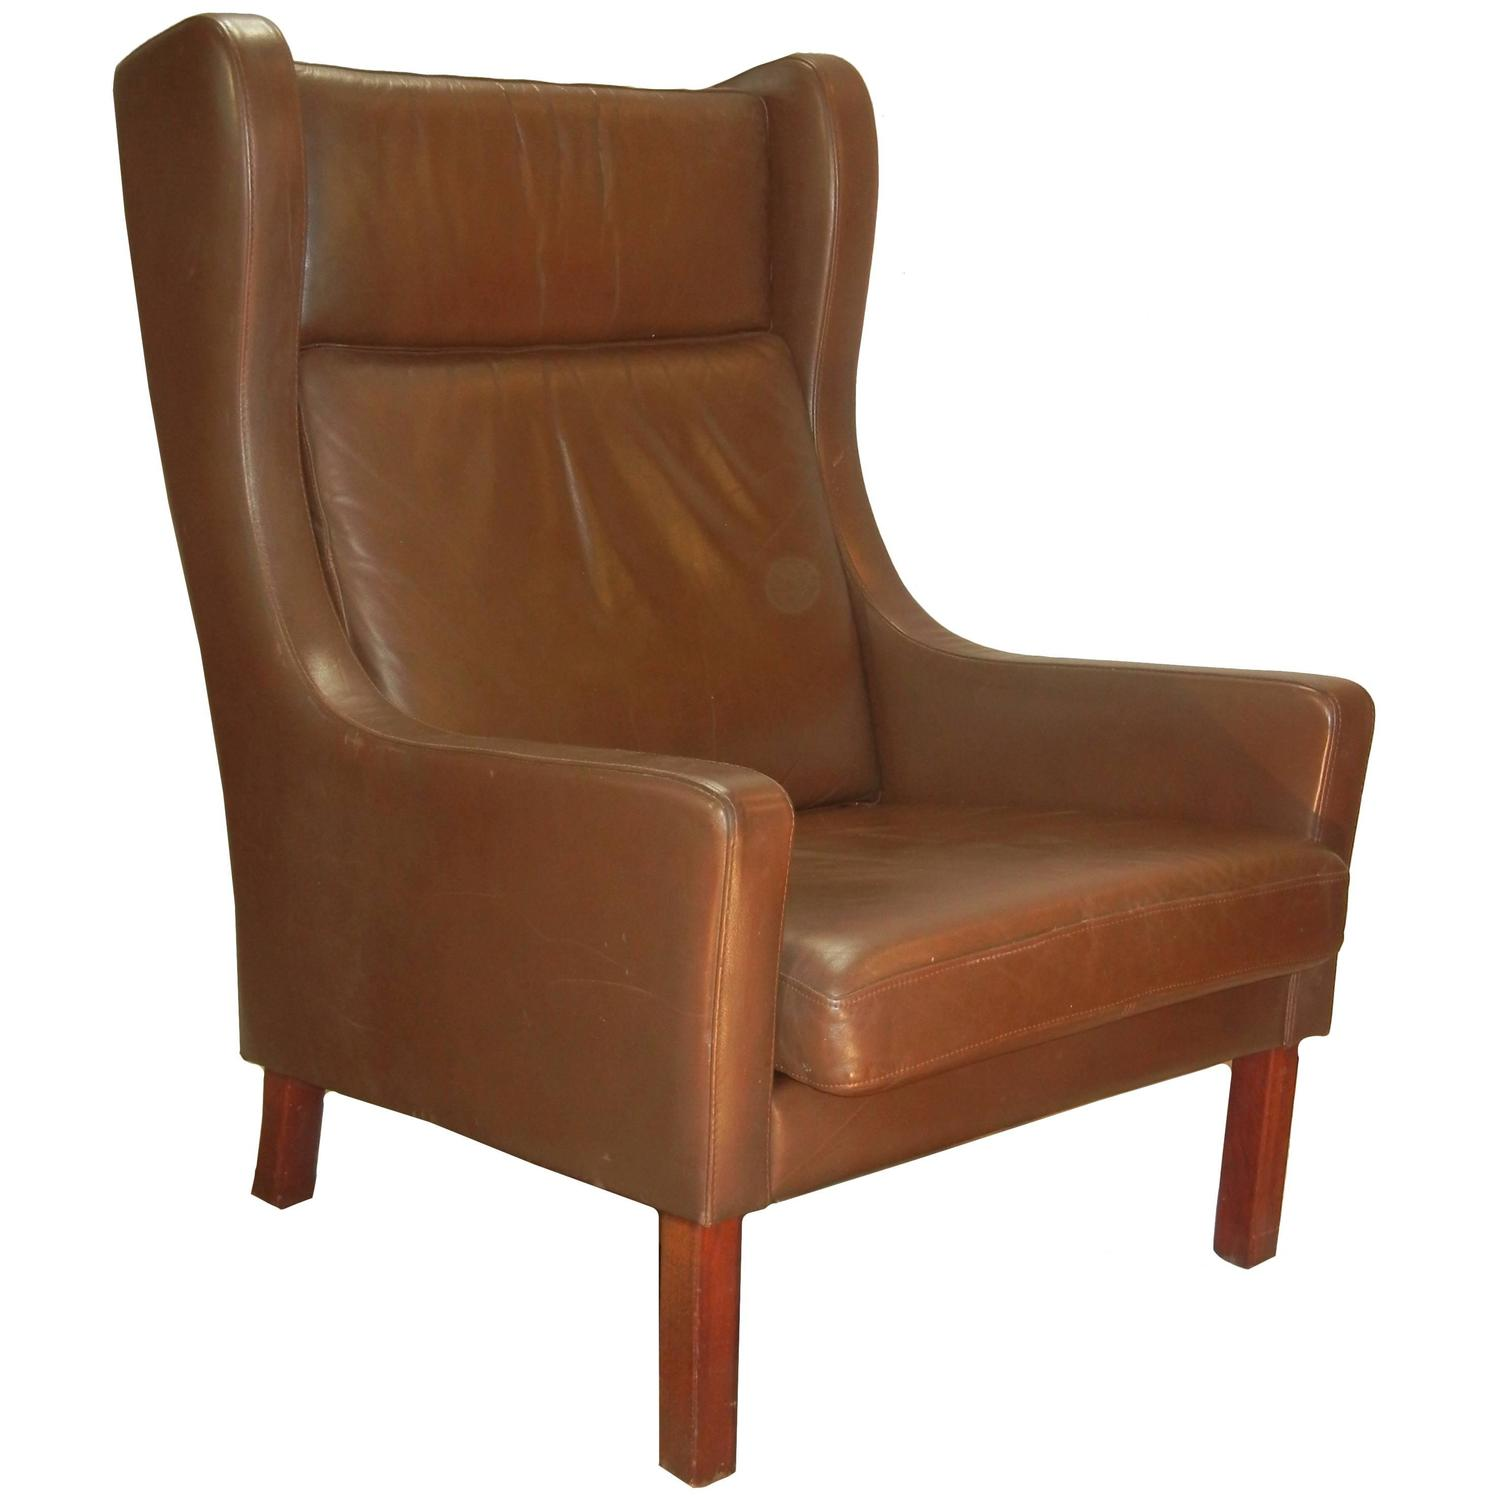 Leather Wing Chair In Danish Modern Børge Mogensen Style